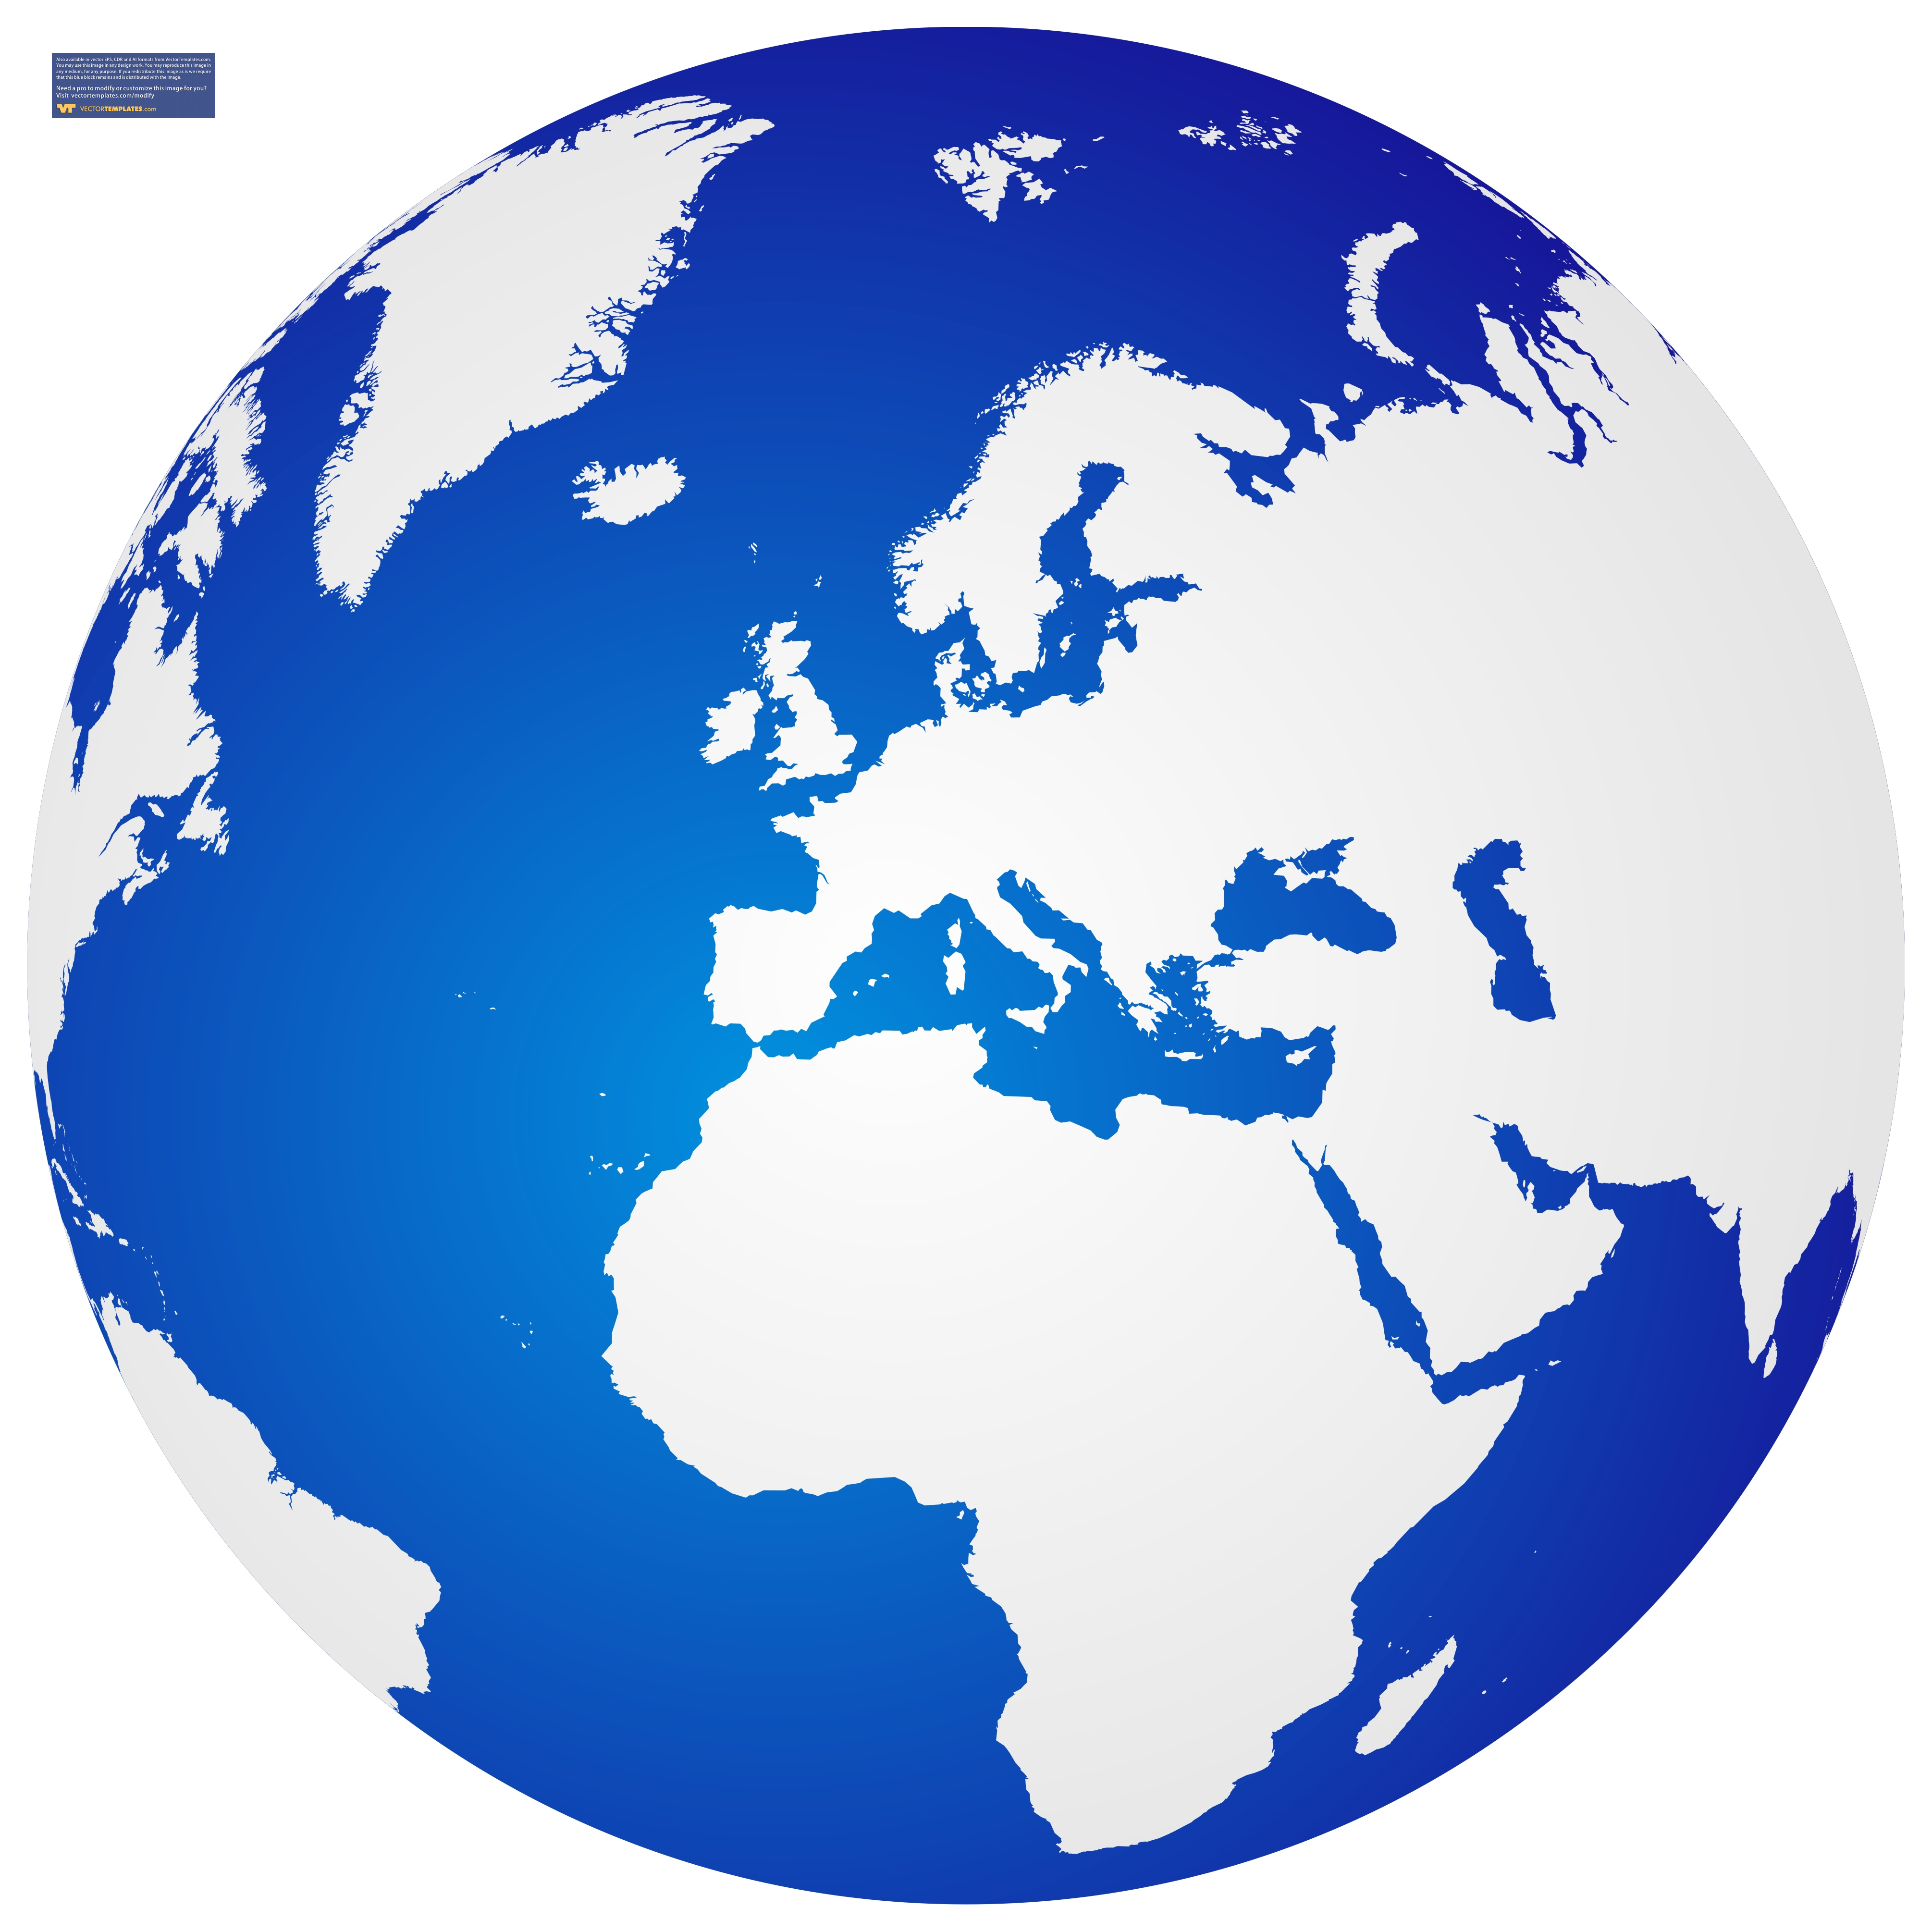 Globe Backgrounds, Compatible - PC, Mobile, Gadgets| 4021x4021 px